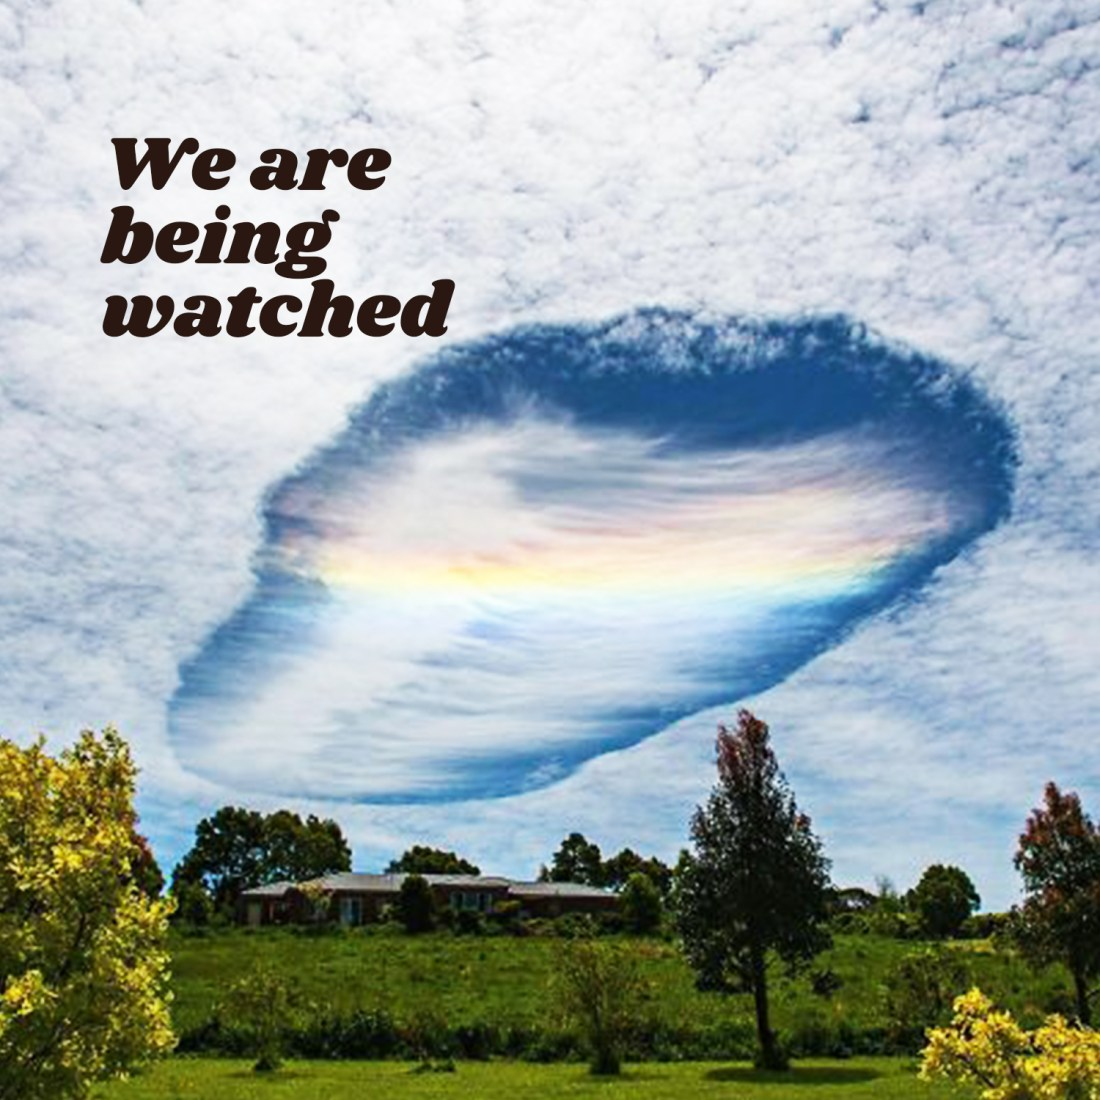 We are being watched